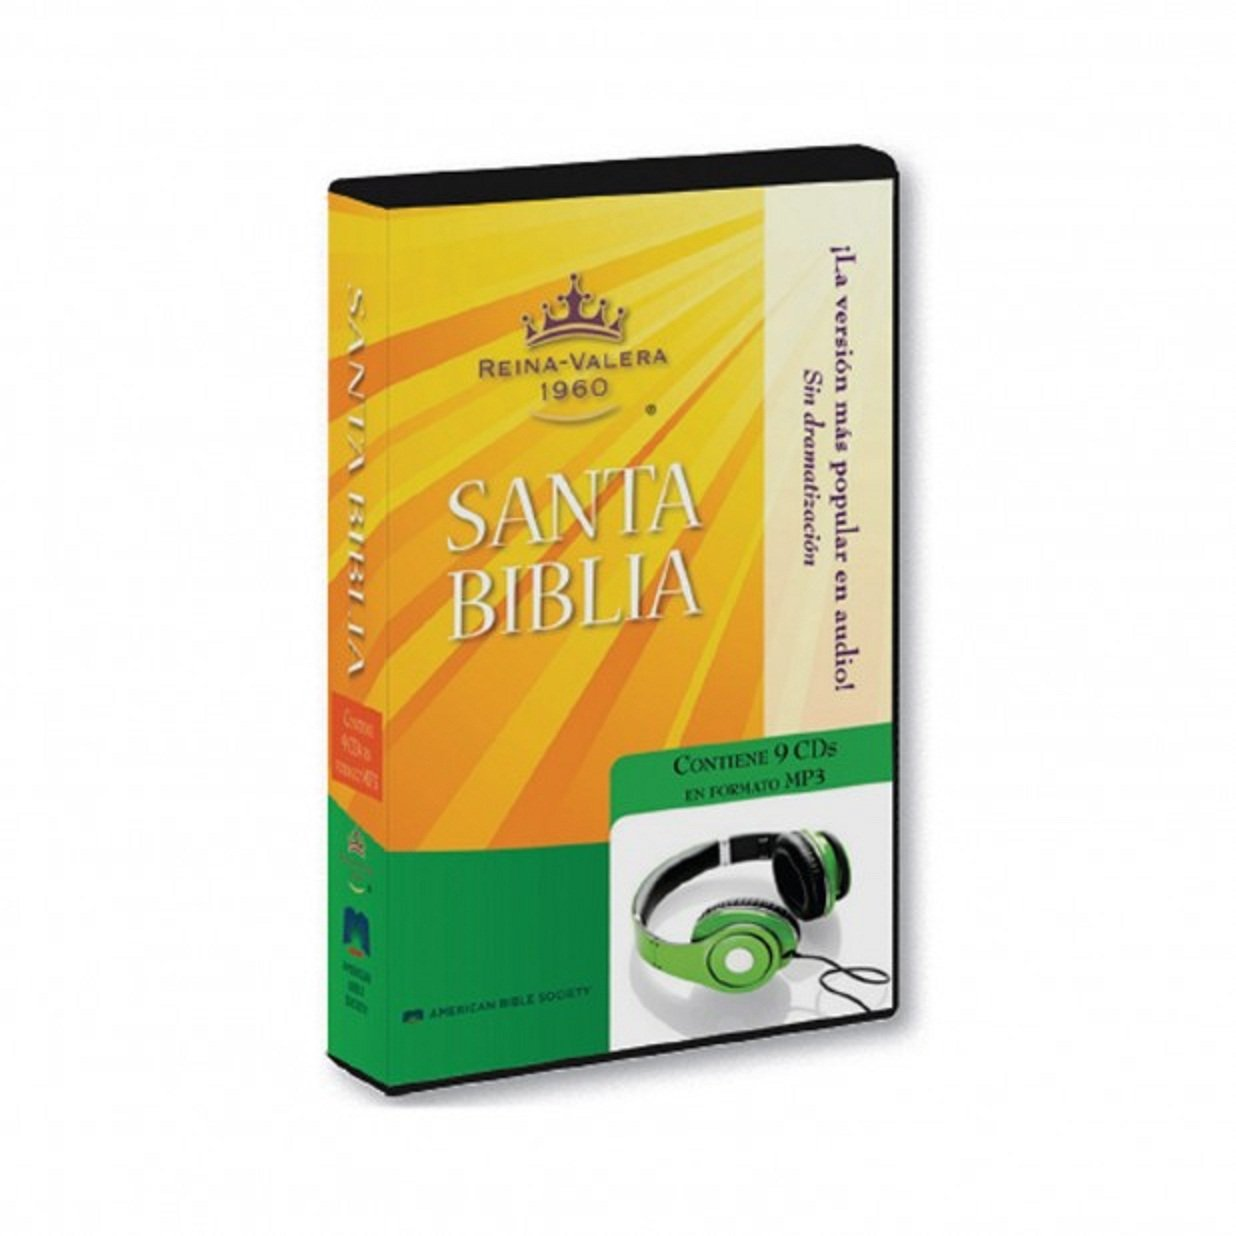 Reina Valera Biblia Audio Spanish